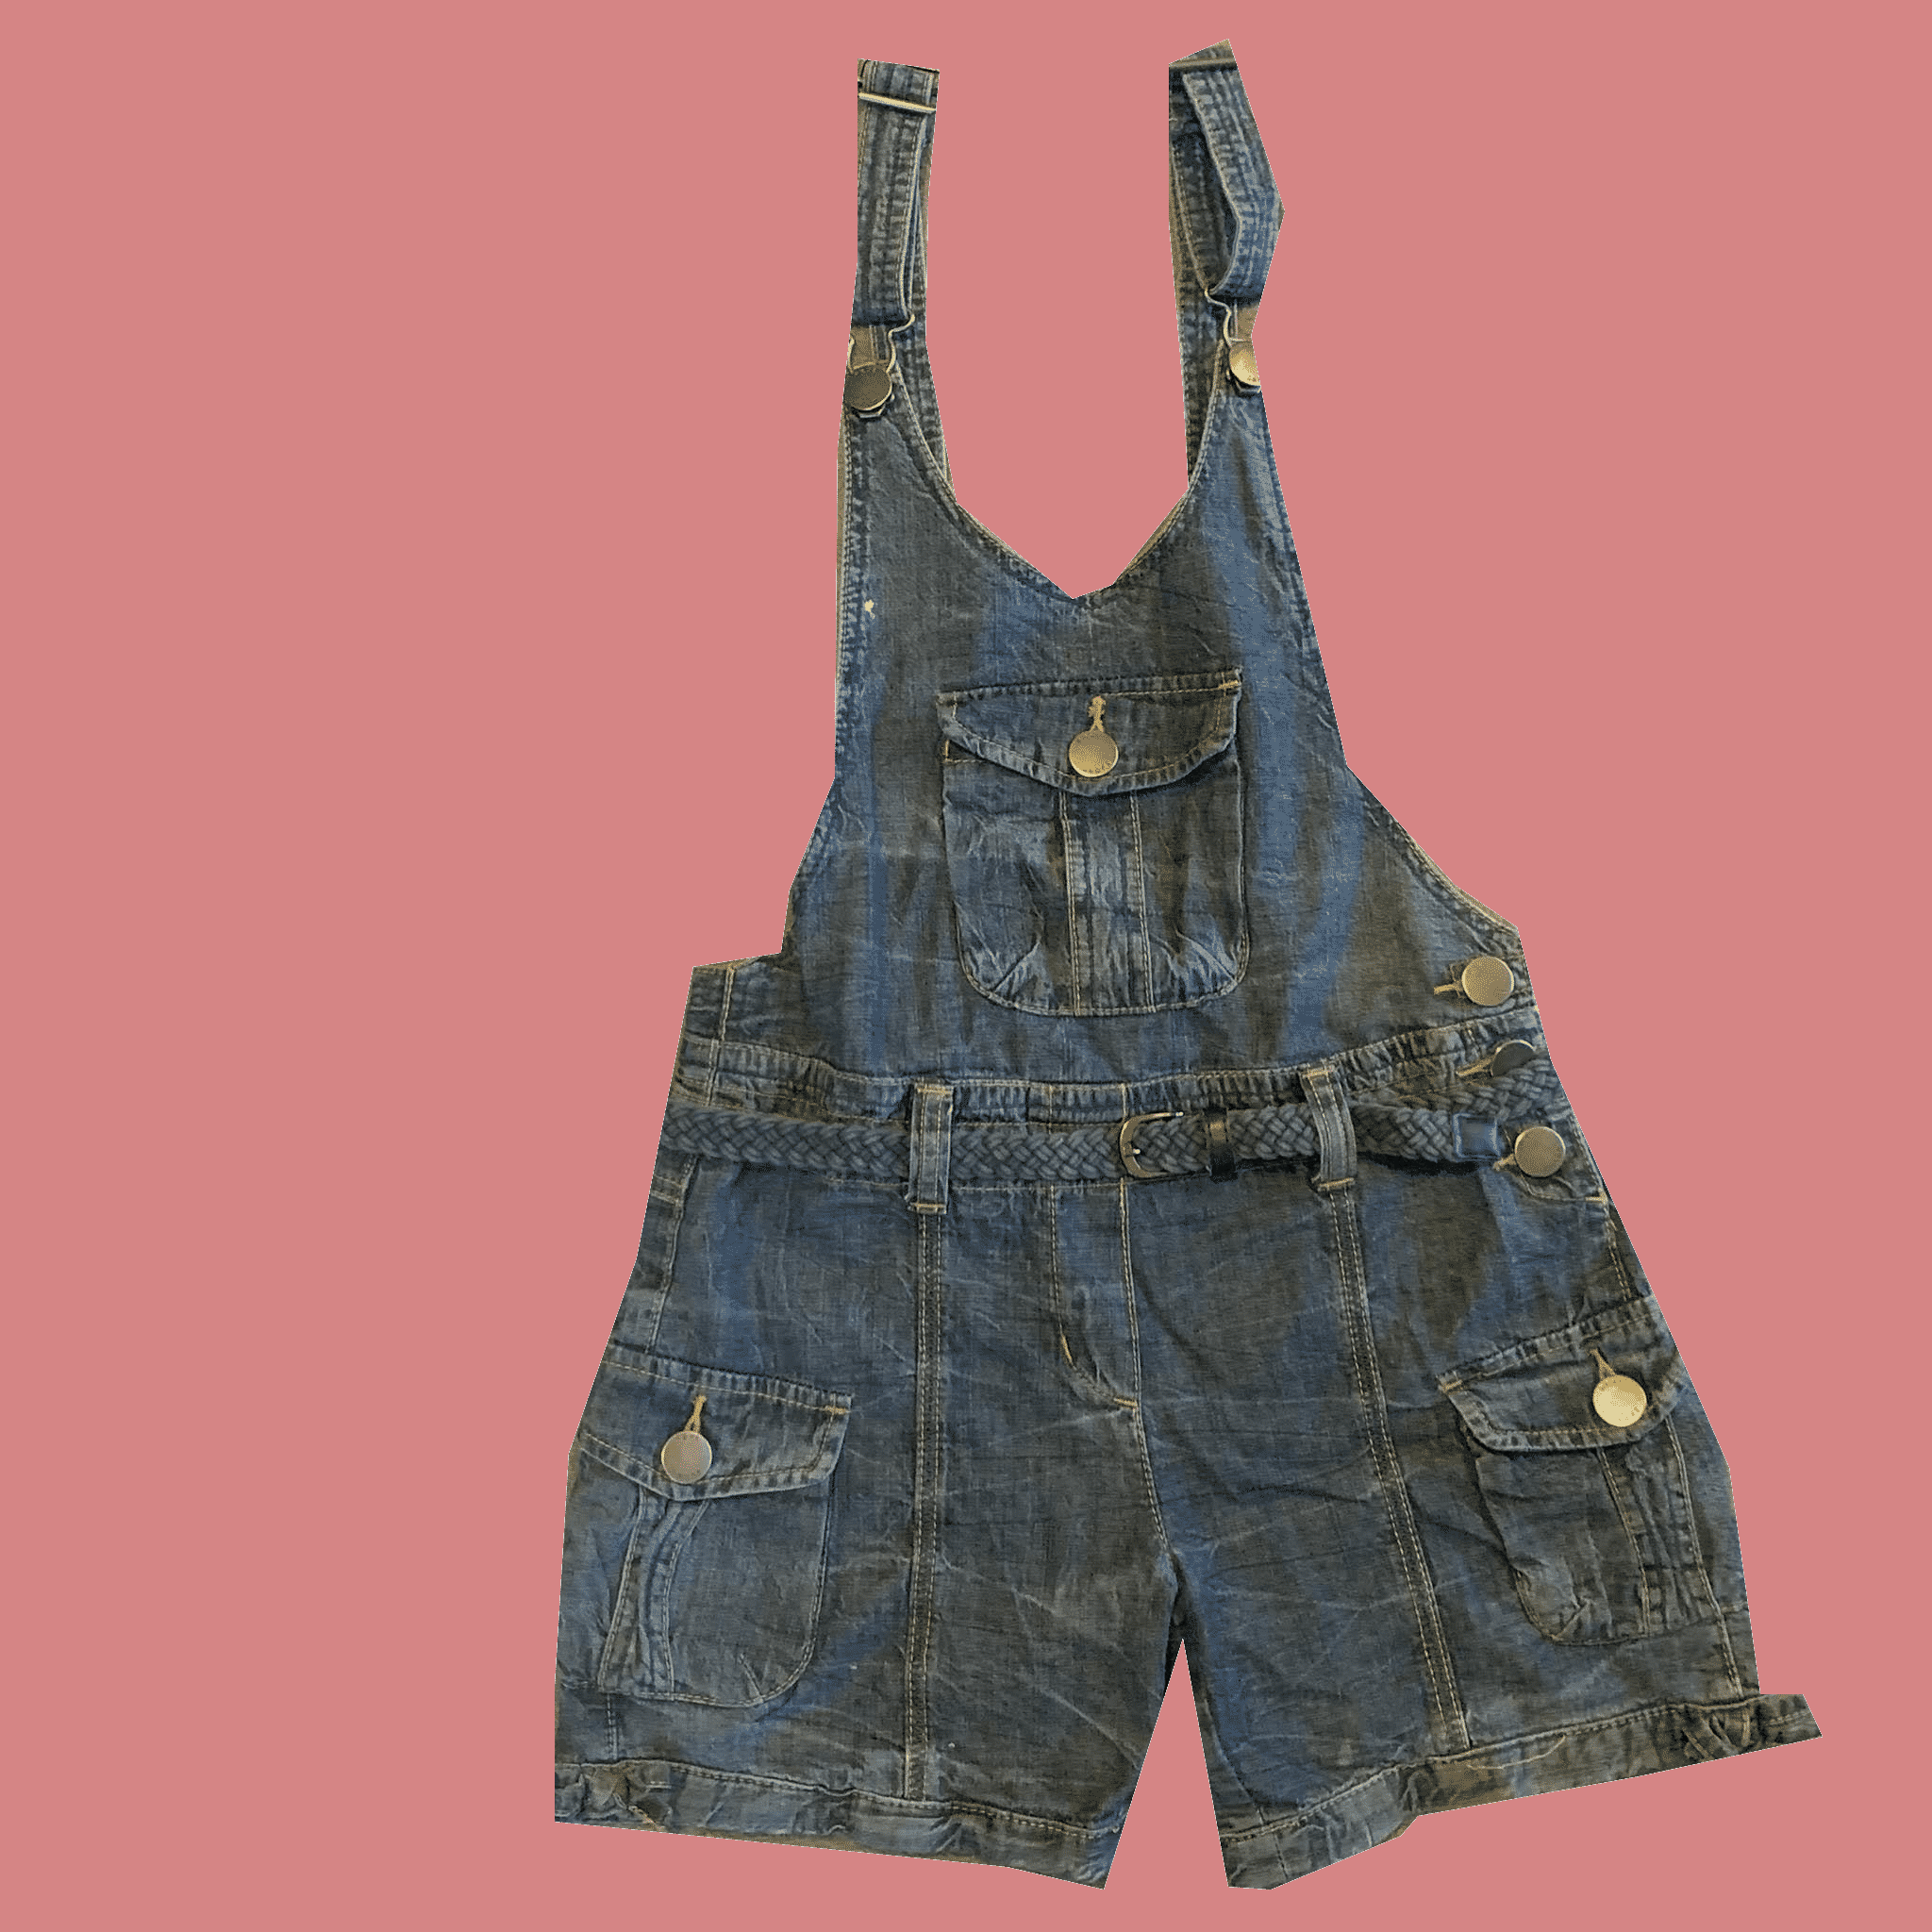 Blue Denim Overalls, Size- 11 years old, #380